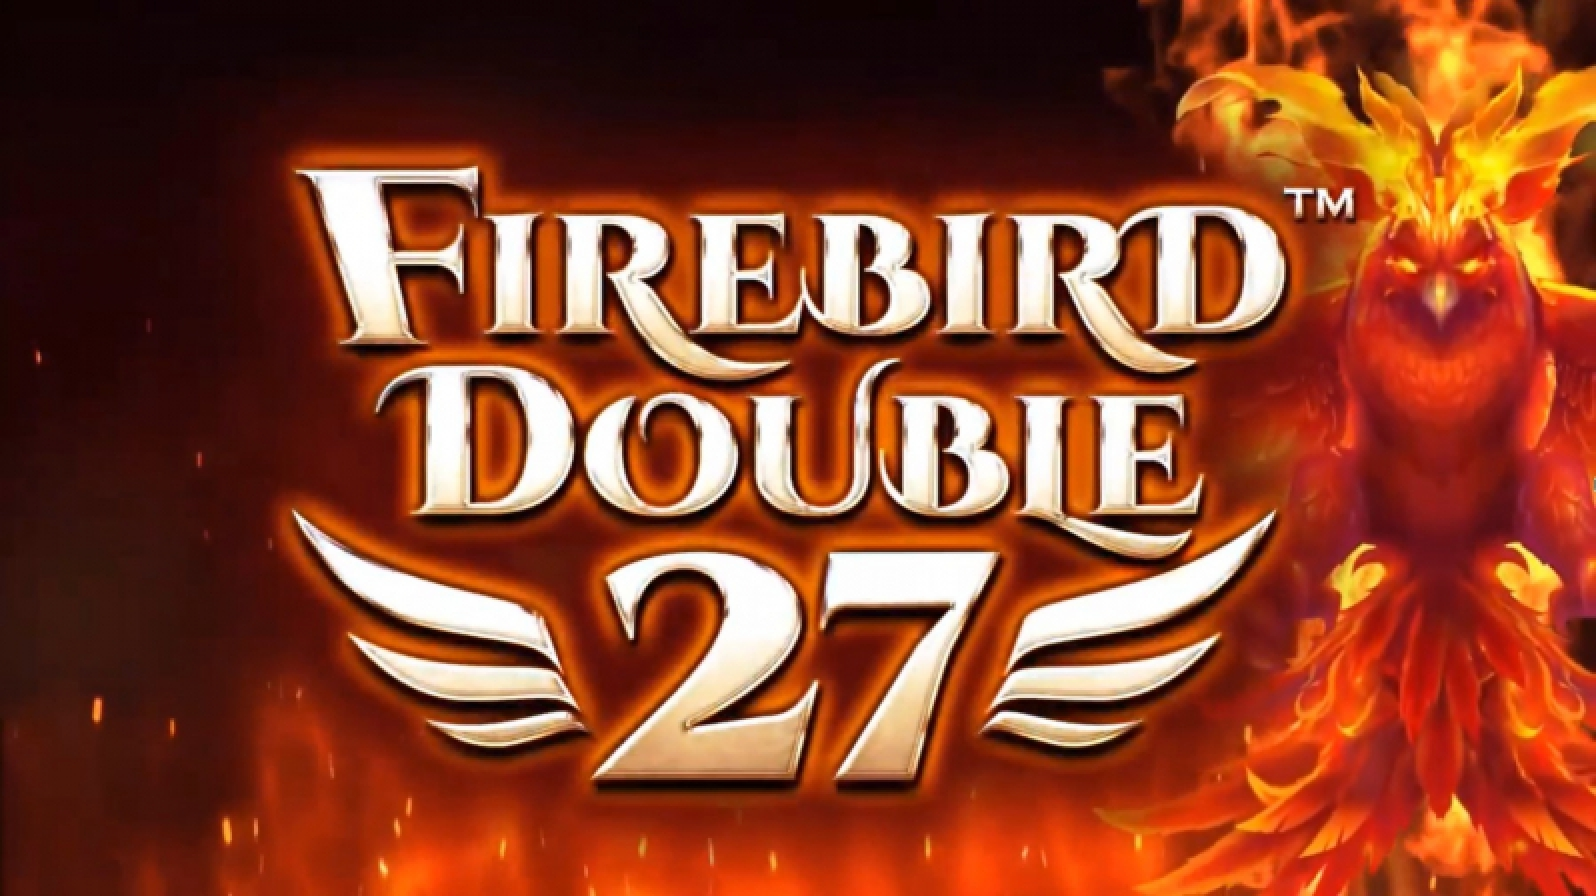 The Firebird Double 27 Online Slot Demo Game by Synot Games